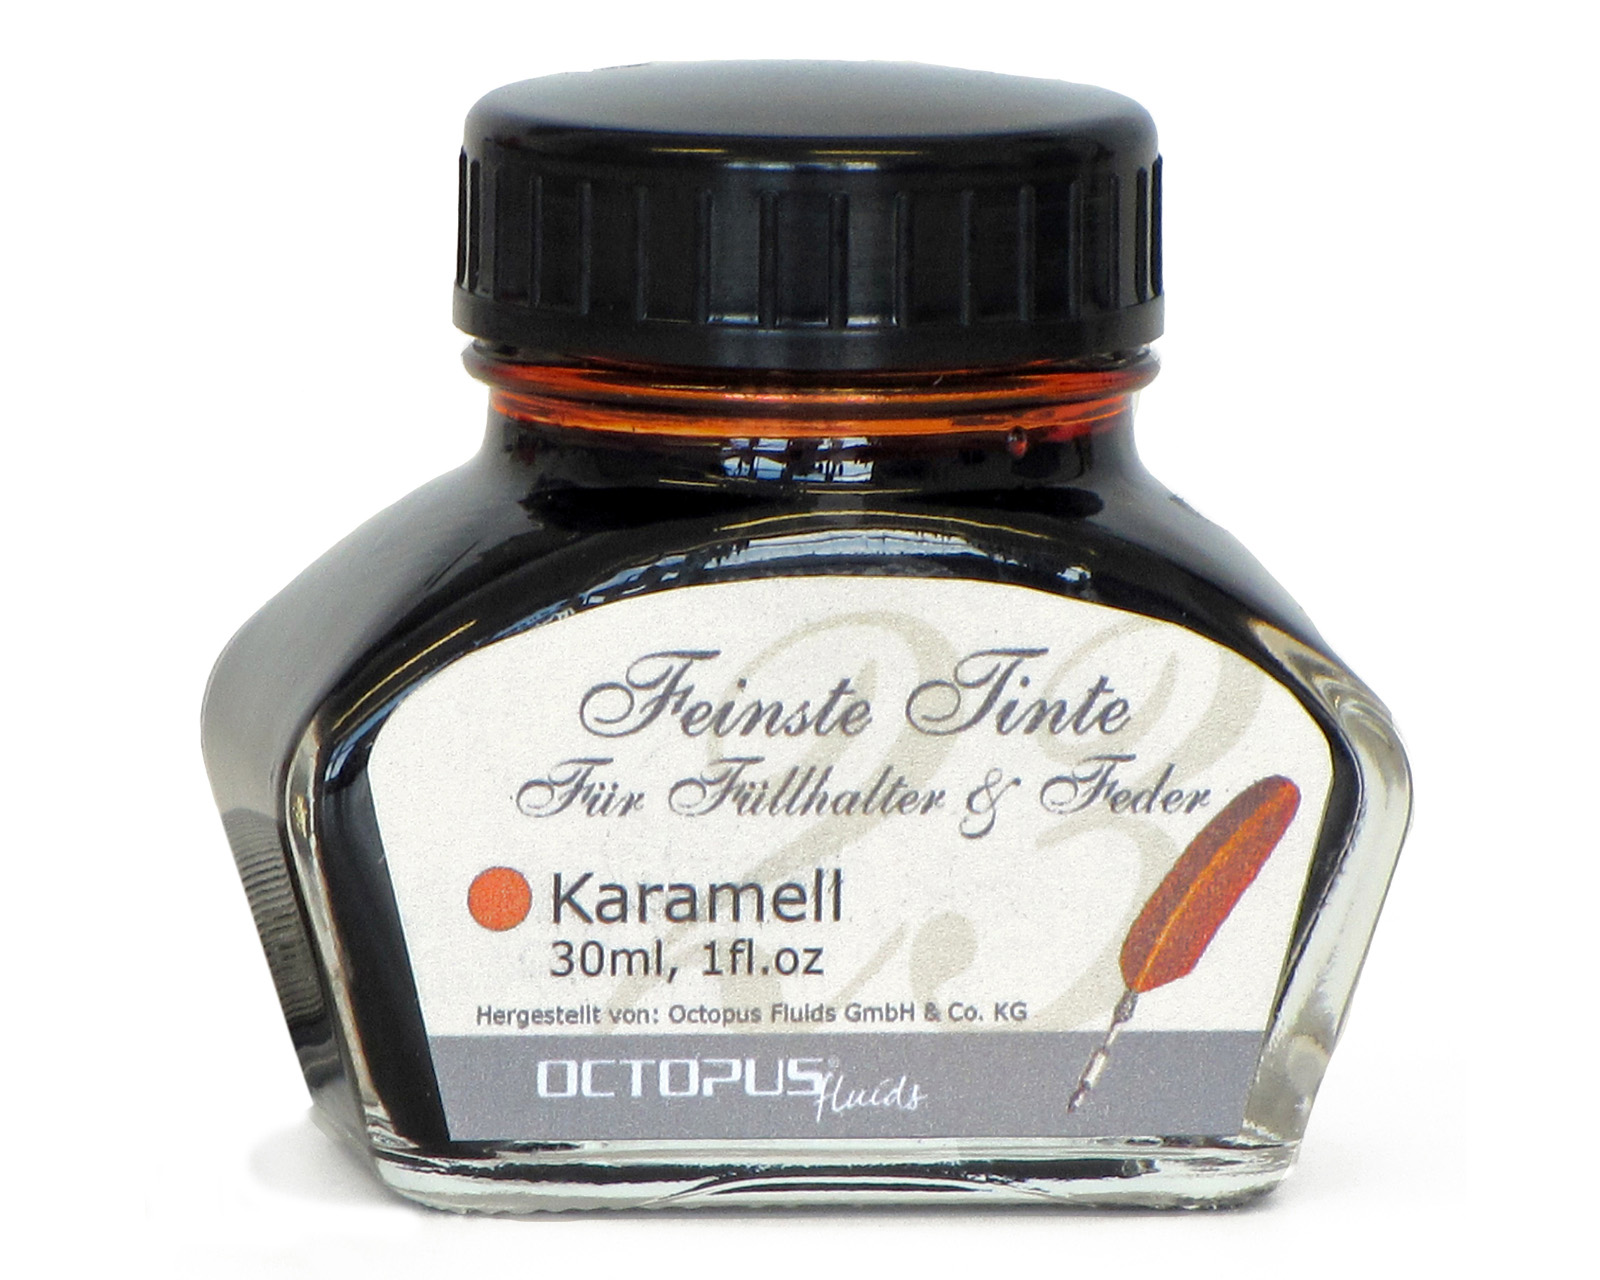 Fine writing ink for fountain pens and quills, caramel